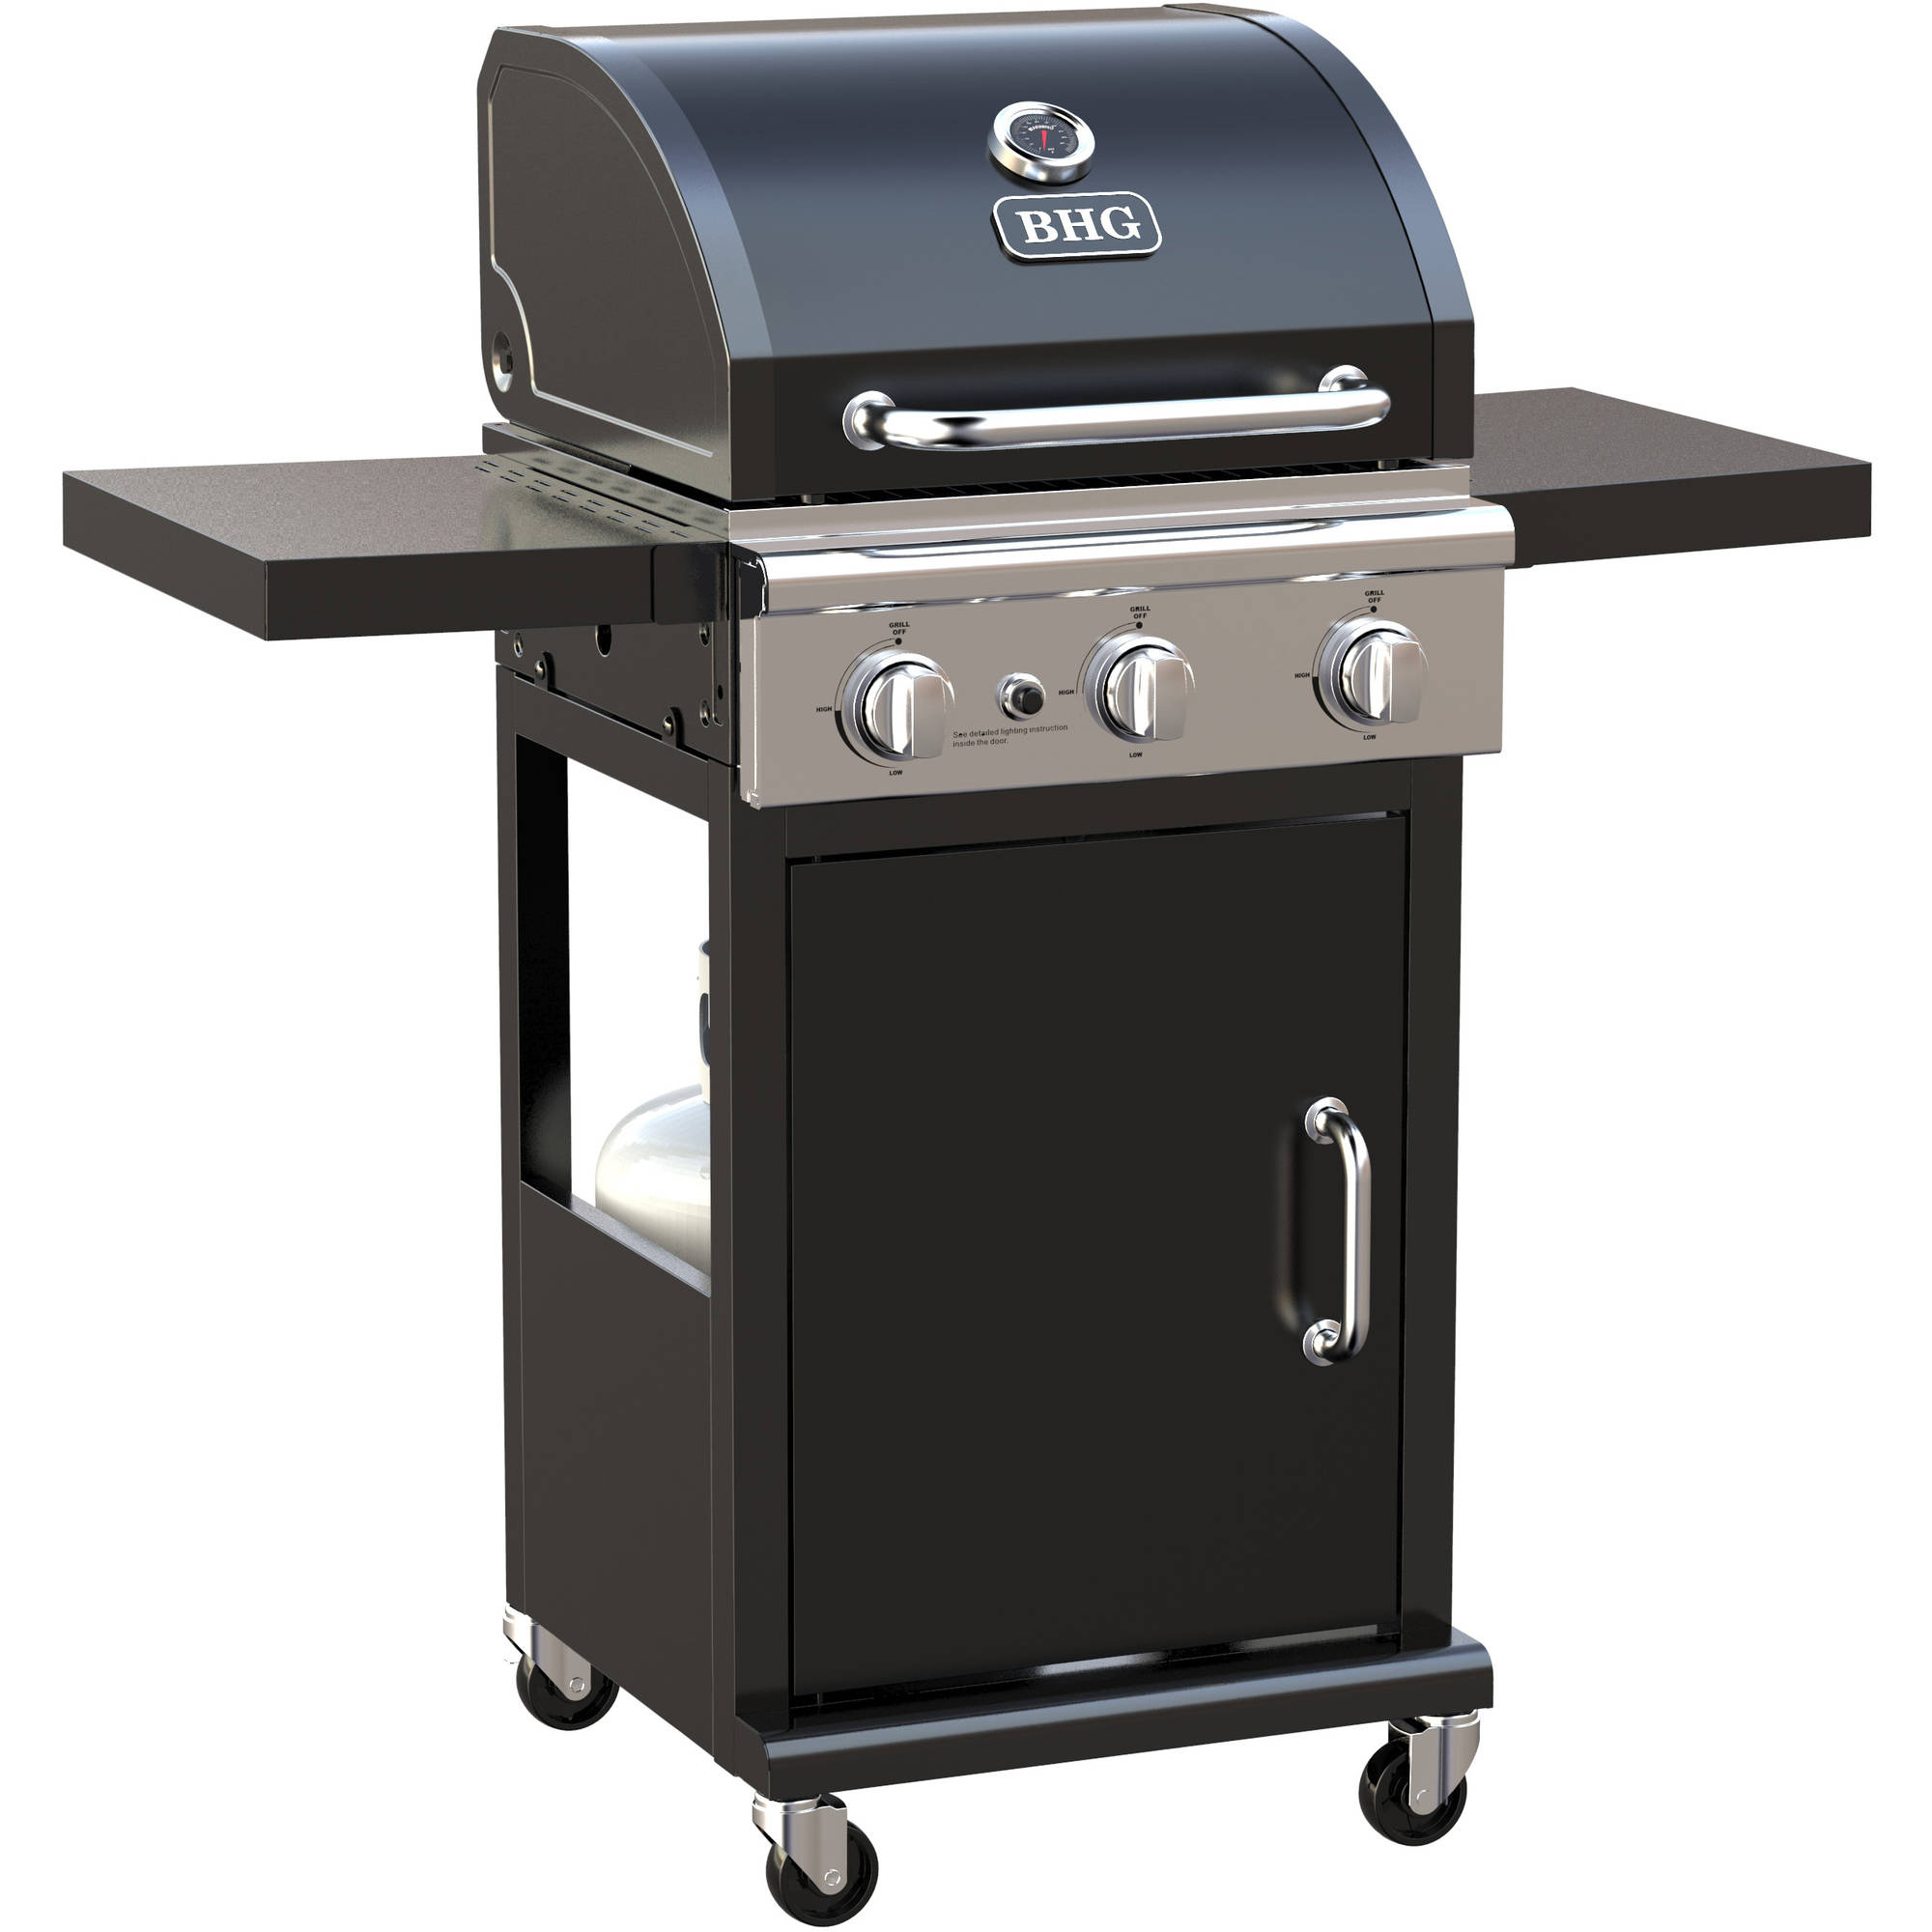 Better Homes and Gardens Stainless Steel 4 Burner Gas Grill with